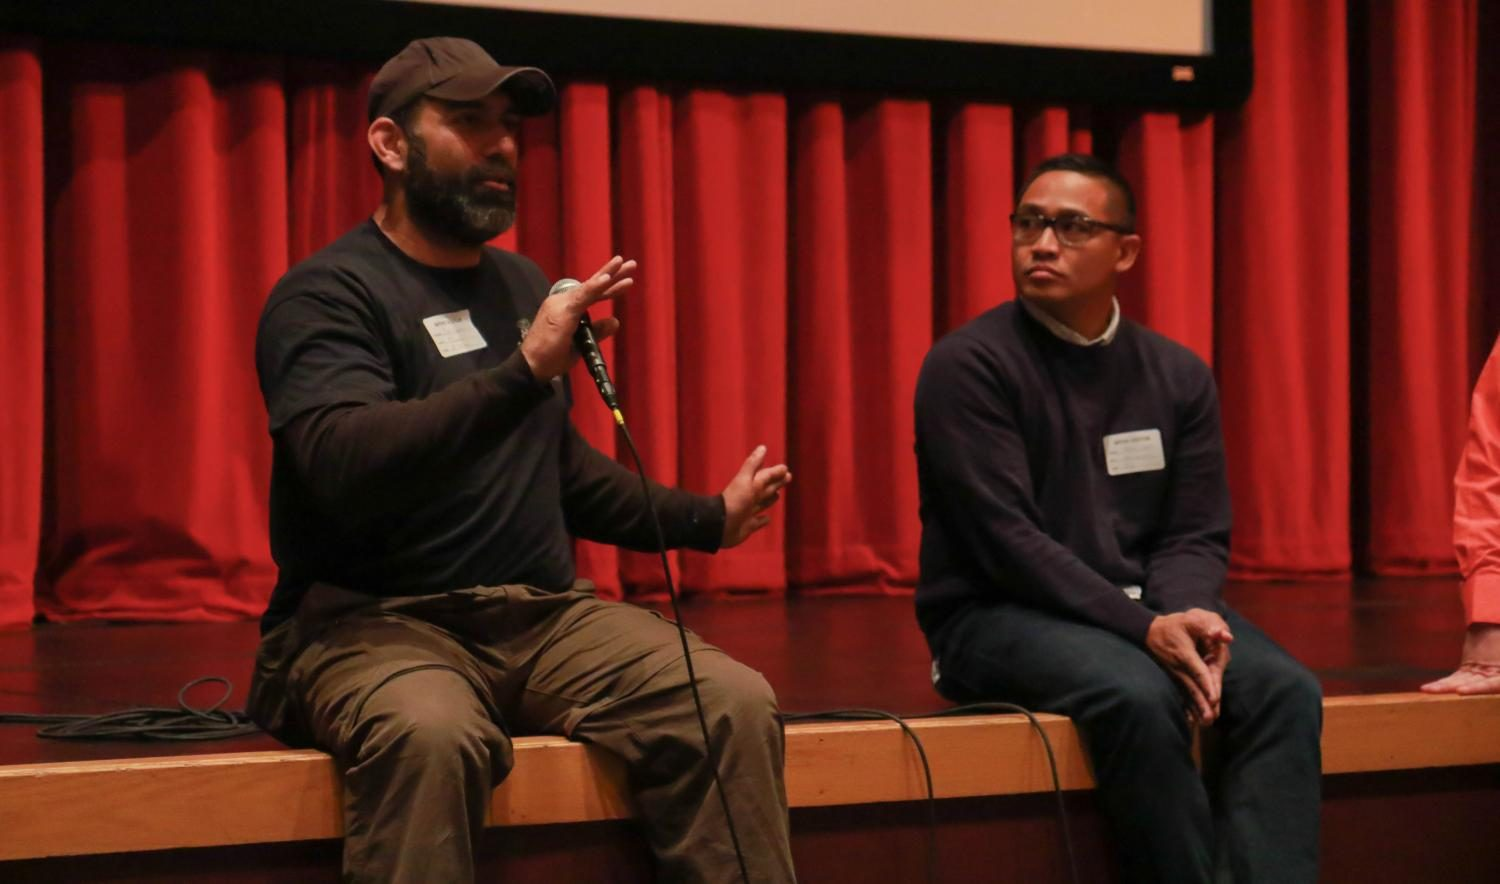 SIFF premieres documentary; director and subject interact with students in Terrace theater